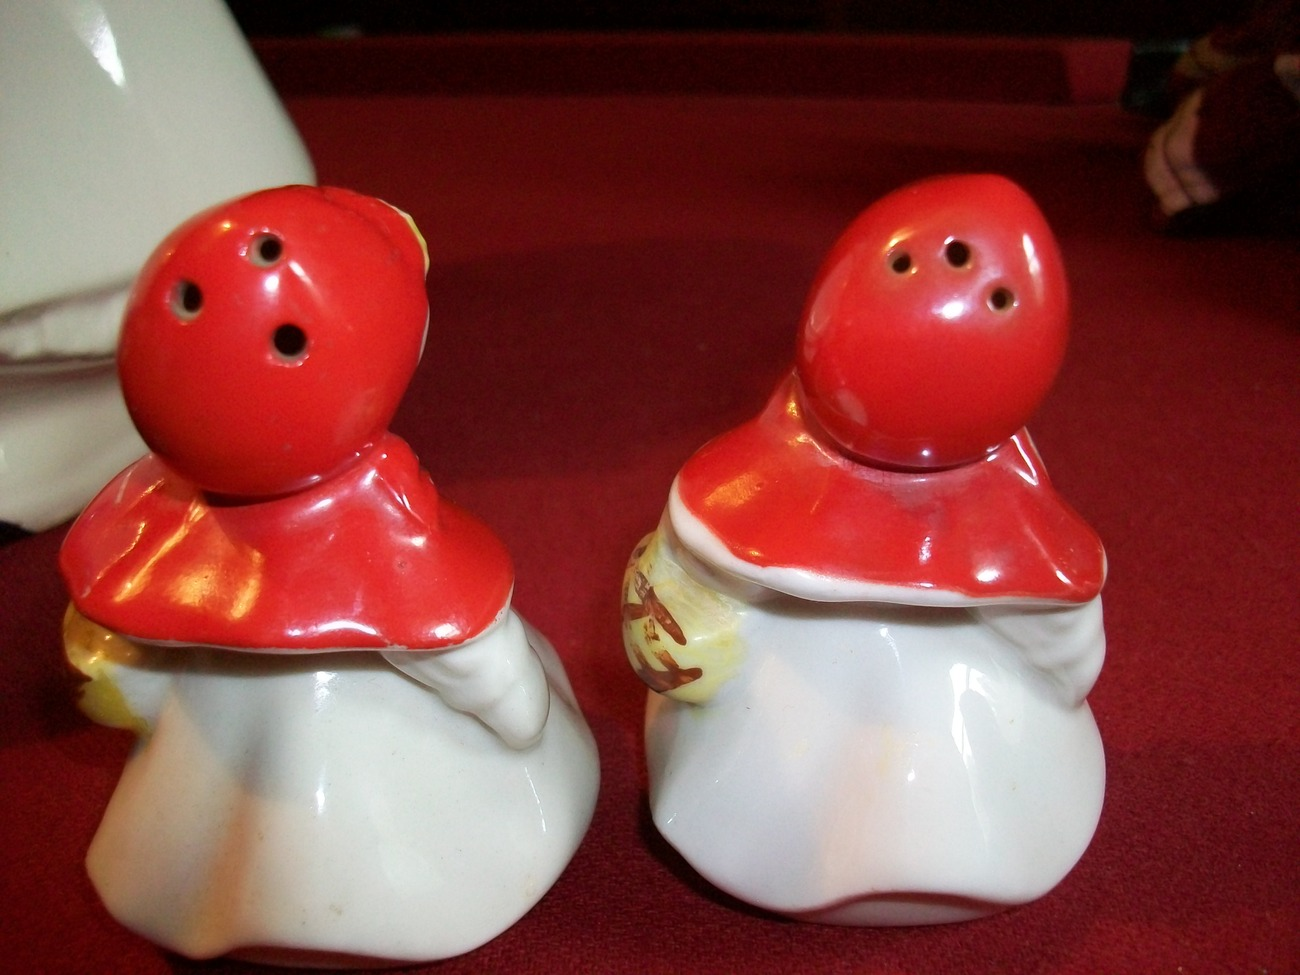 Vintage Little Red Riding Hood Salt and Pepper Shakers 3 1/4 inch